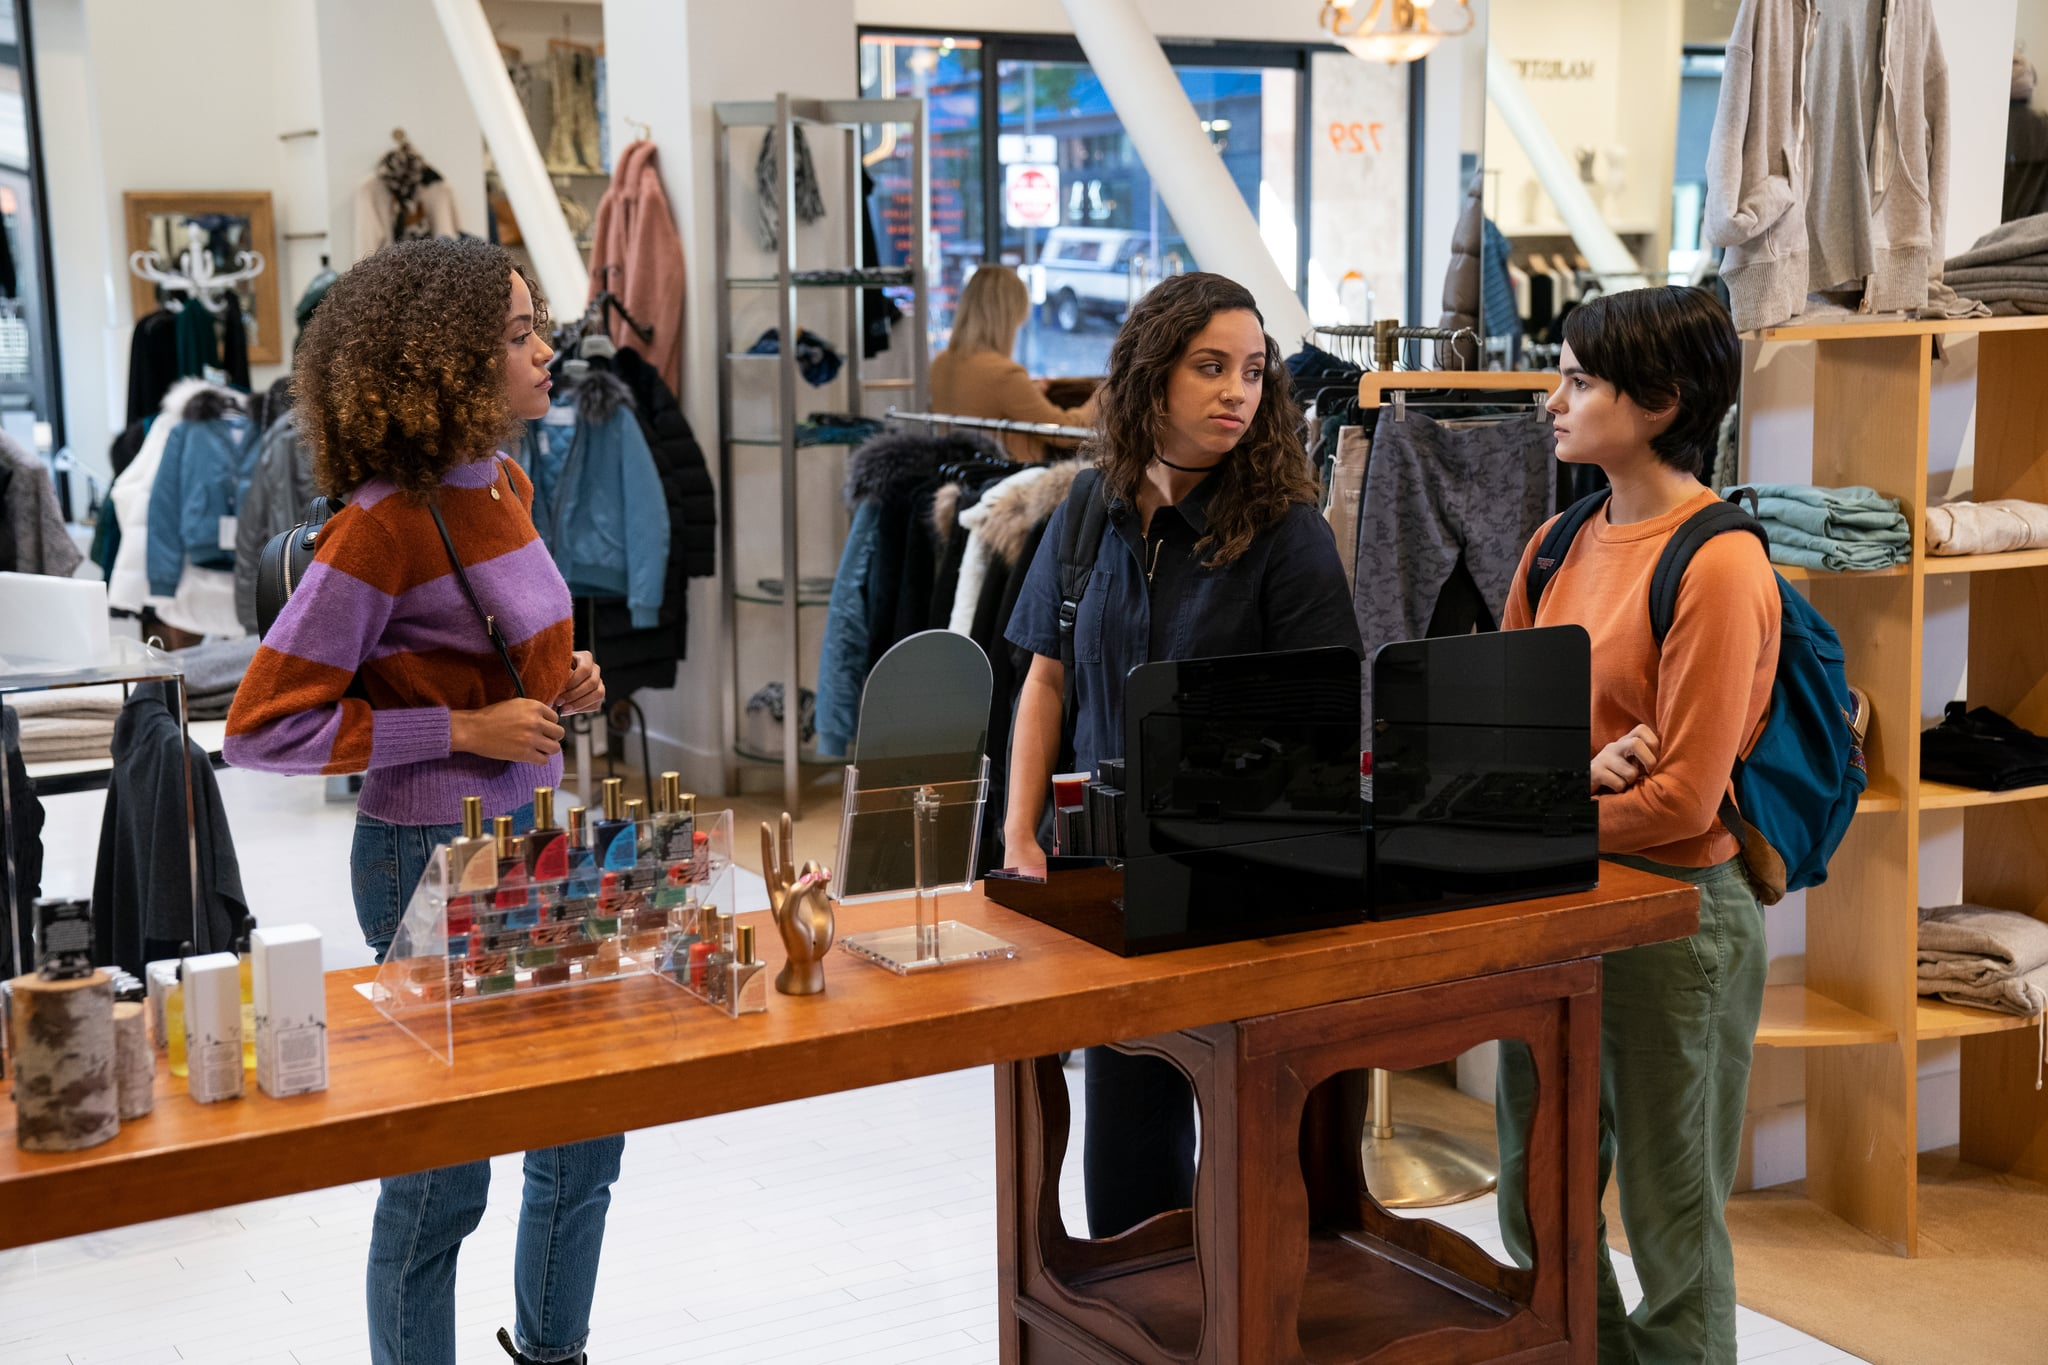 Trinkets Could Return For a Second Season, but It Would Have to Make Some Changes